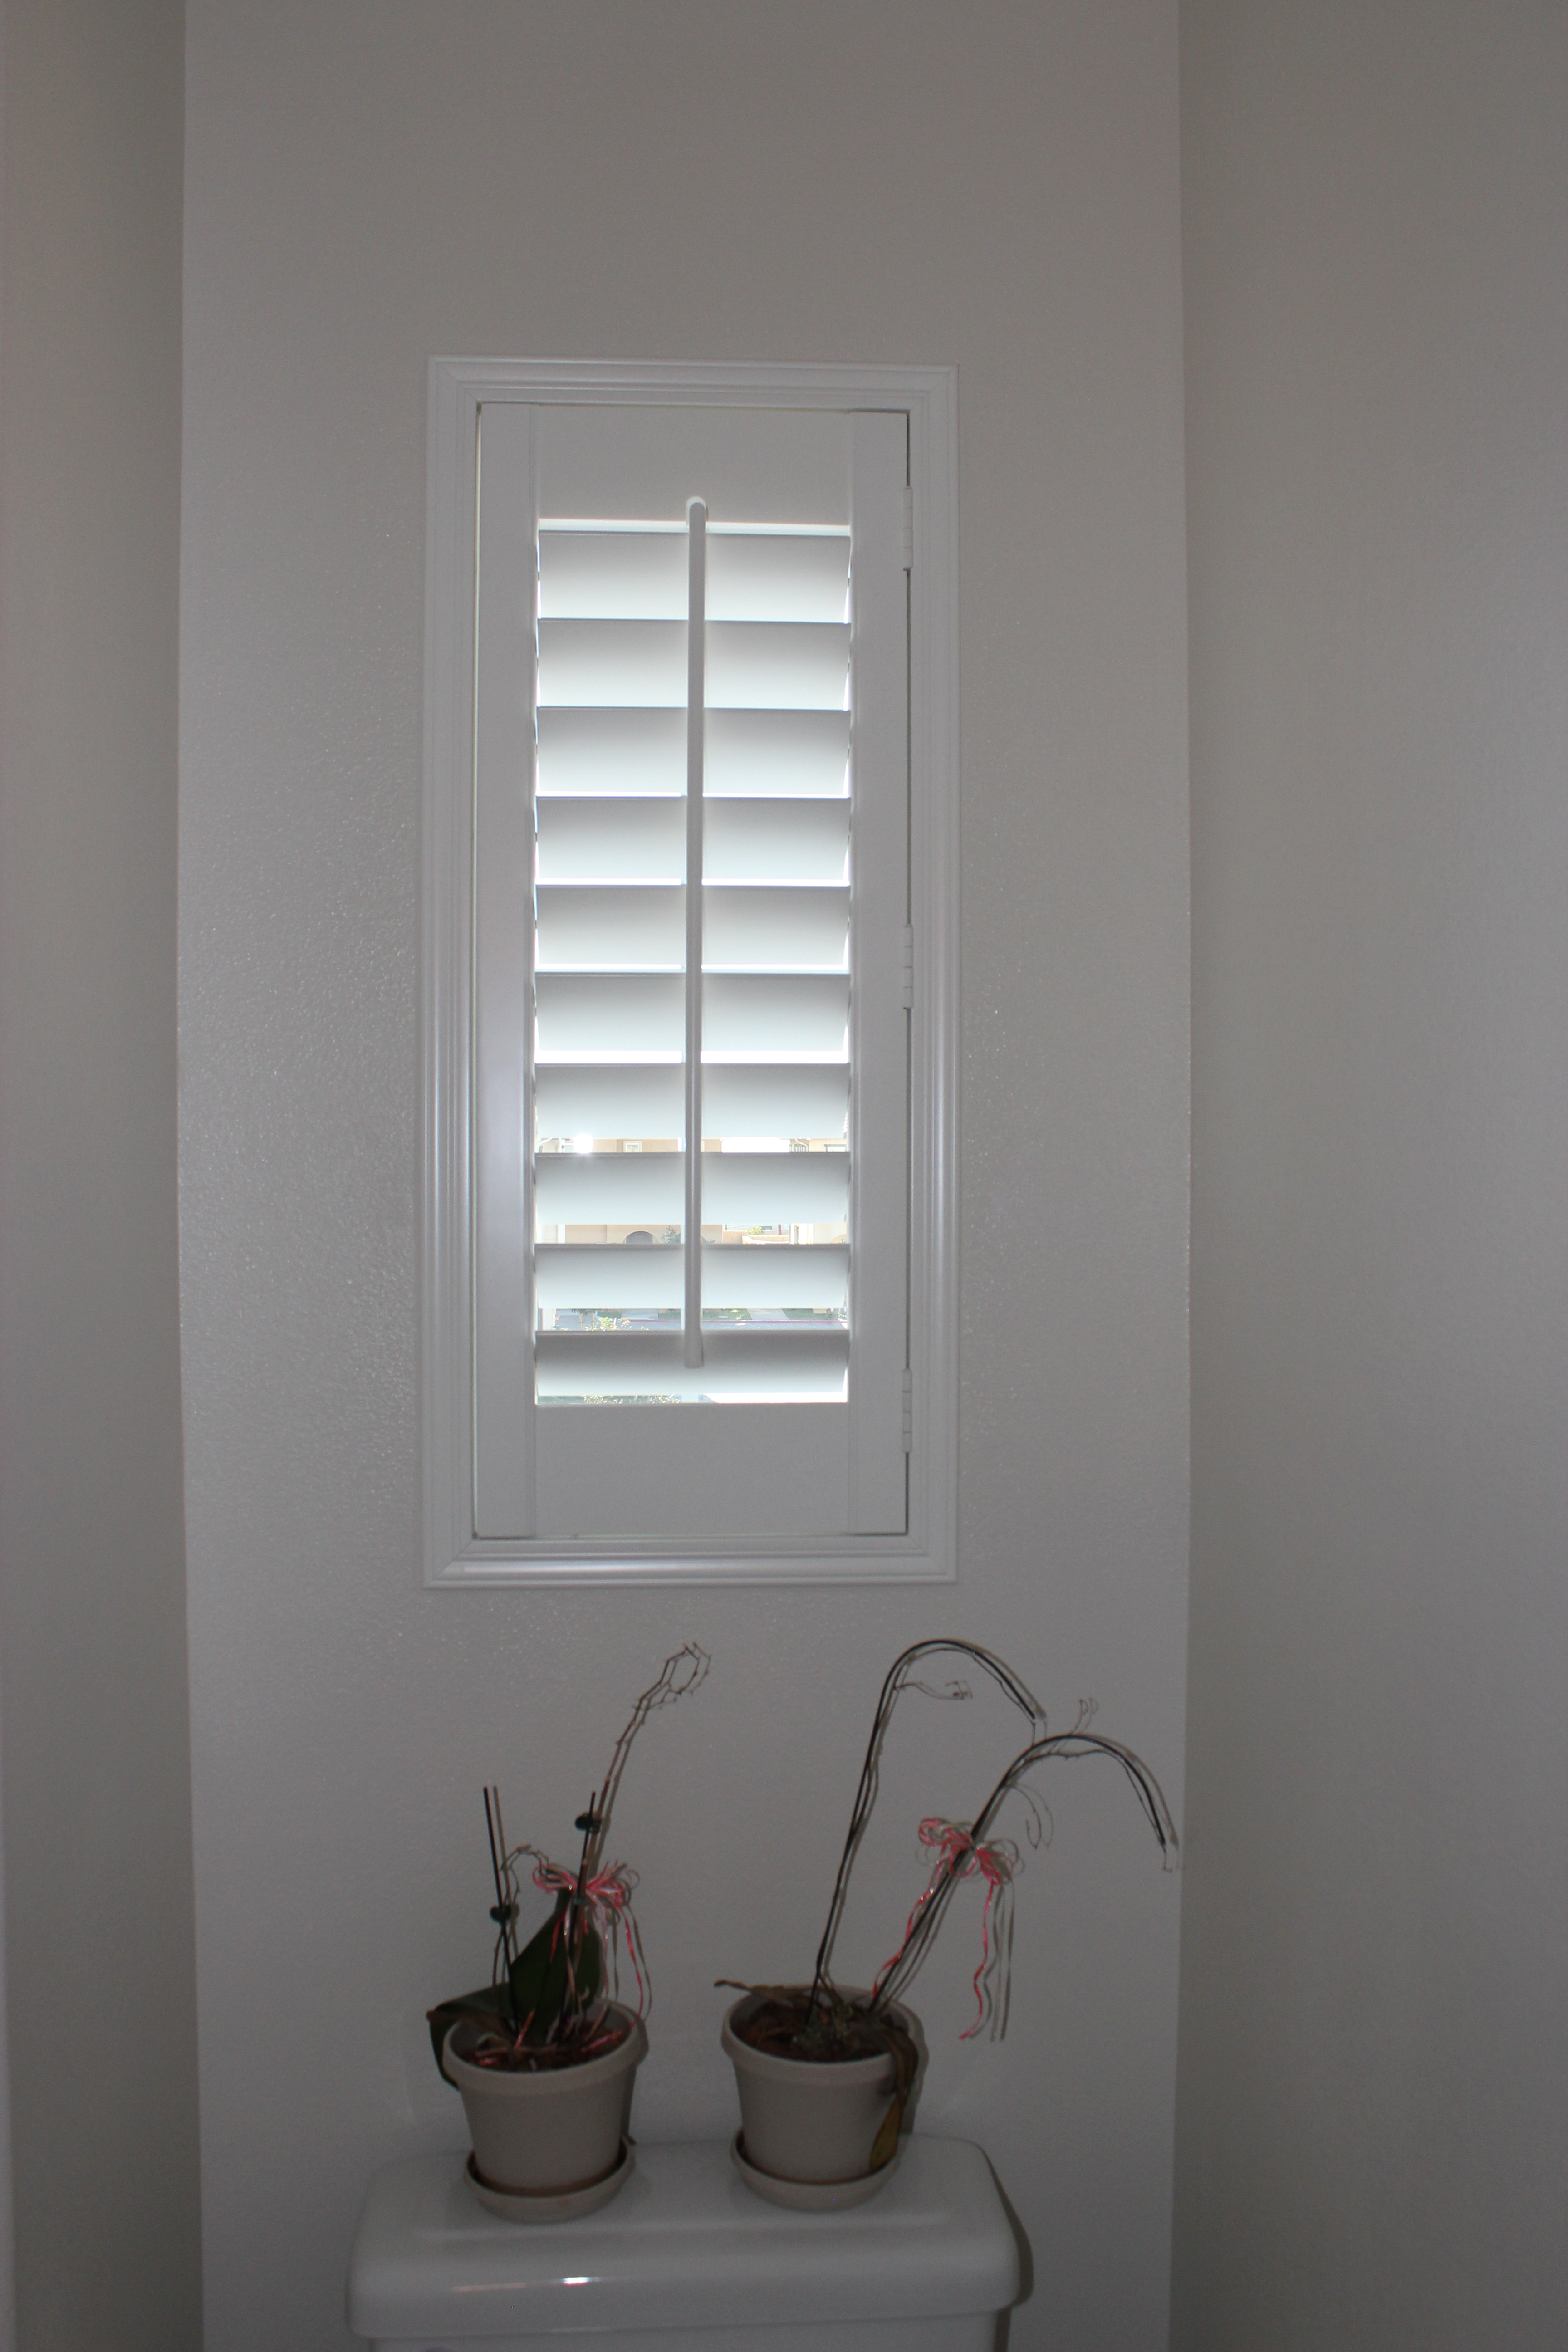 home depot vinyl interior shutters with Lowes Faux Wood Blinds Price on Lowes Faux Wood Blinds Price moreover 7e6a105b4ae6e238 as well 840255 likewise Interior Window Trim Ideas in addition 381539399663407315.